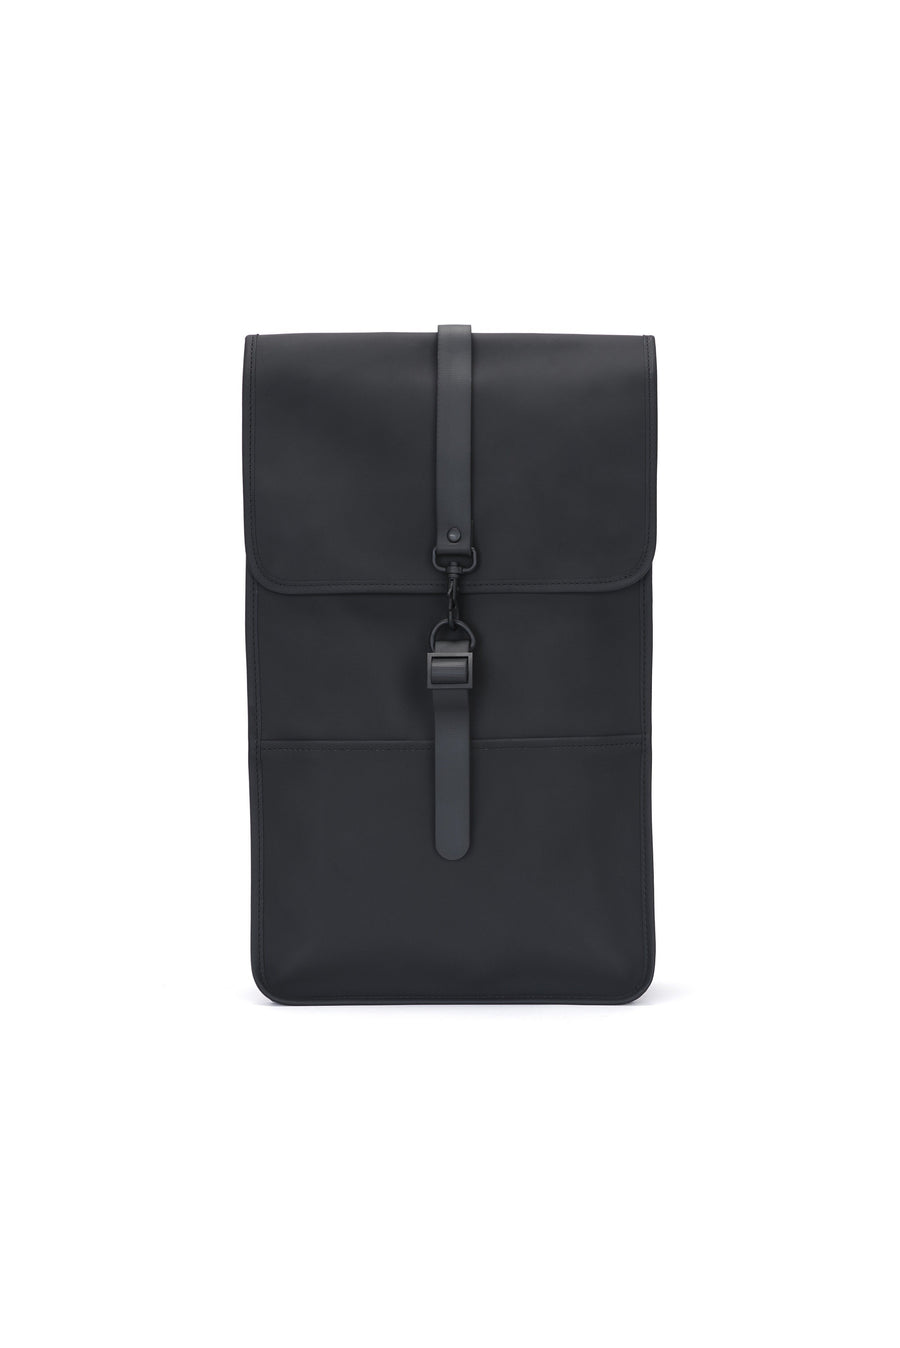 Rains Backpack Black - Pict Clothing